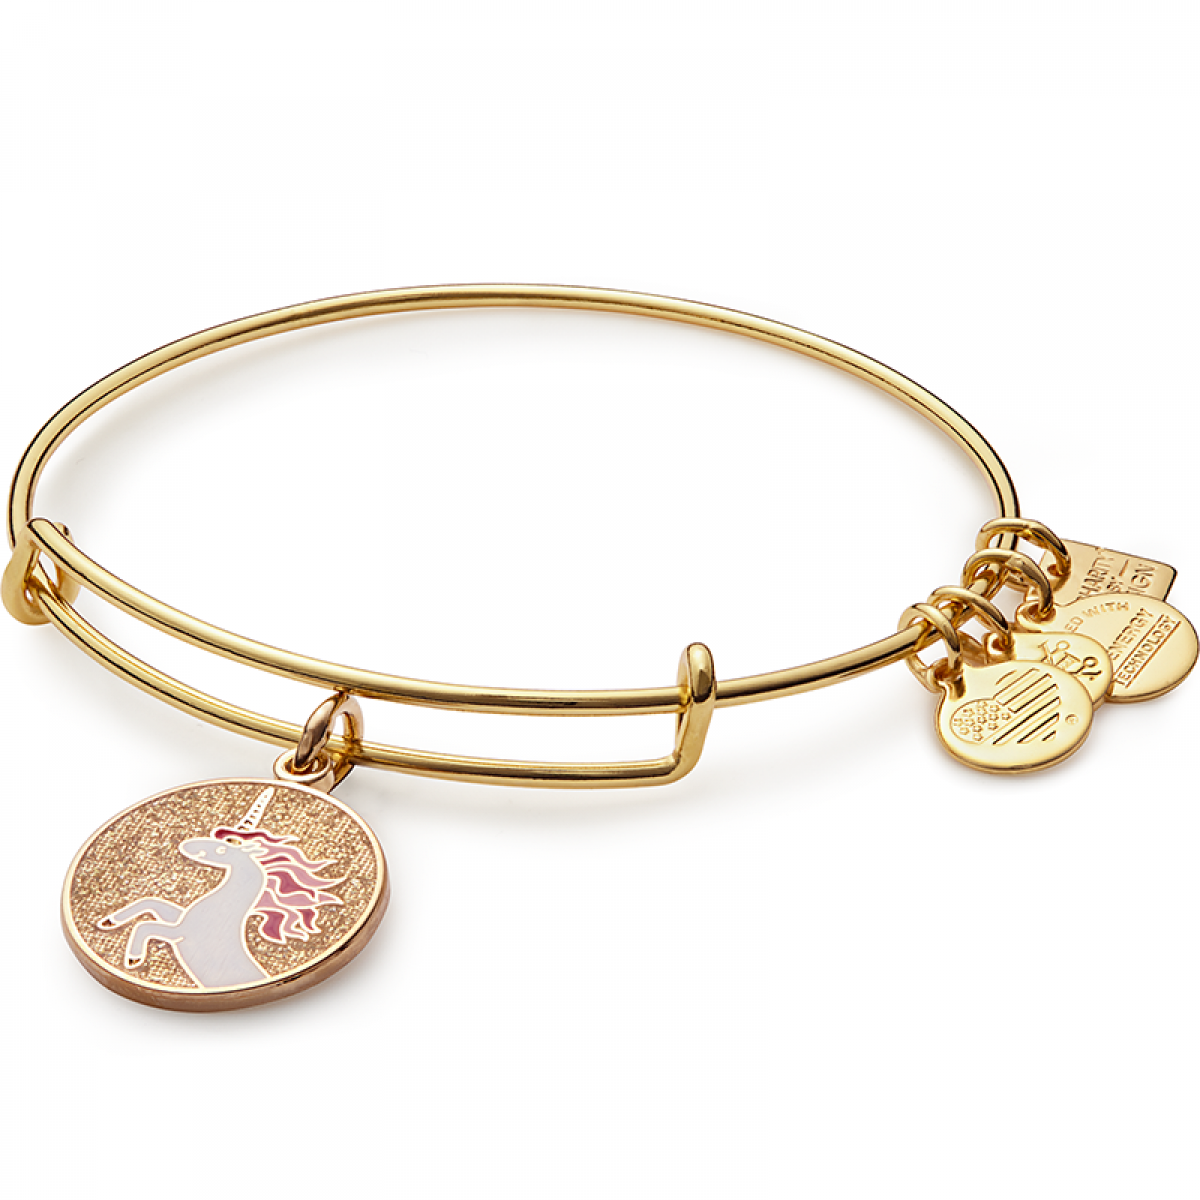 ALEX and ANI Charms Give Back.